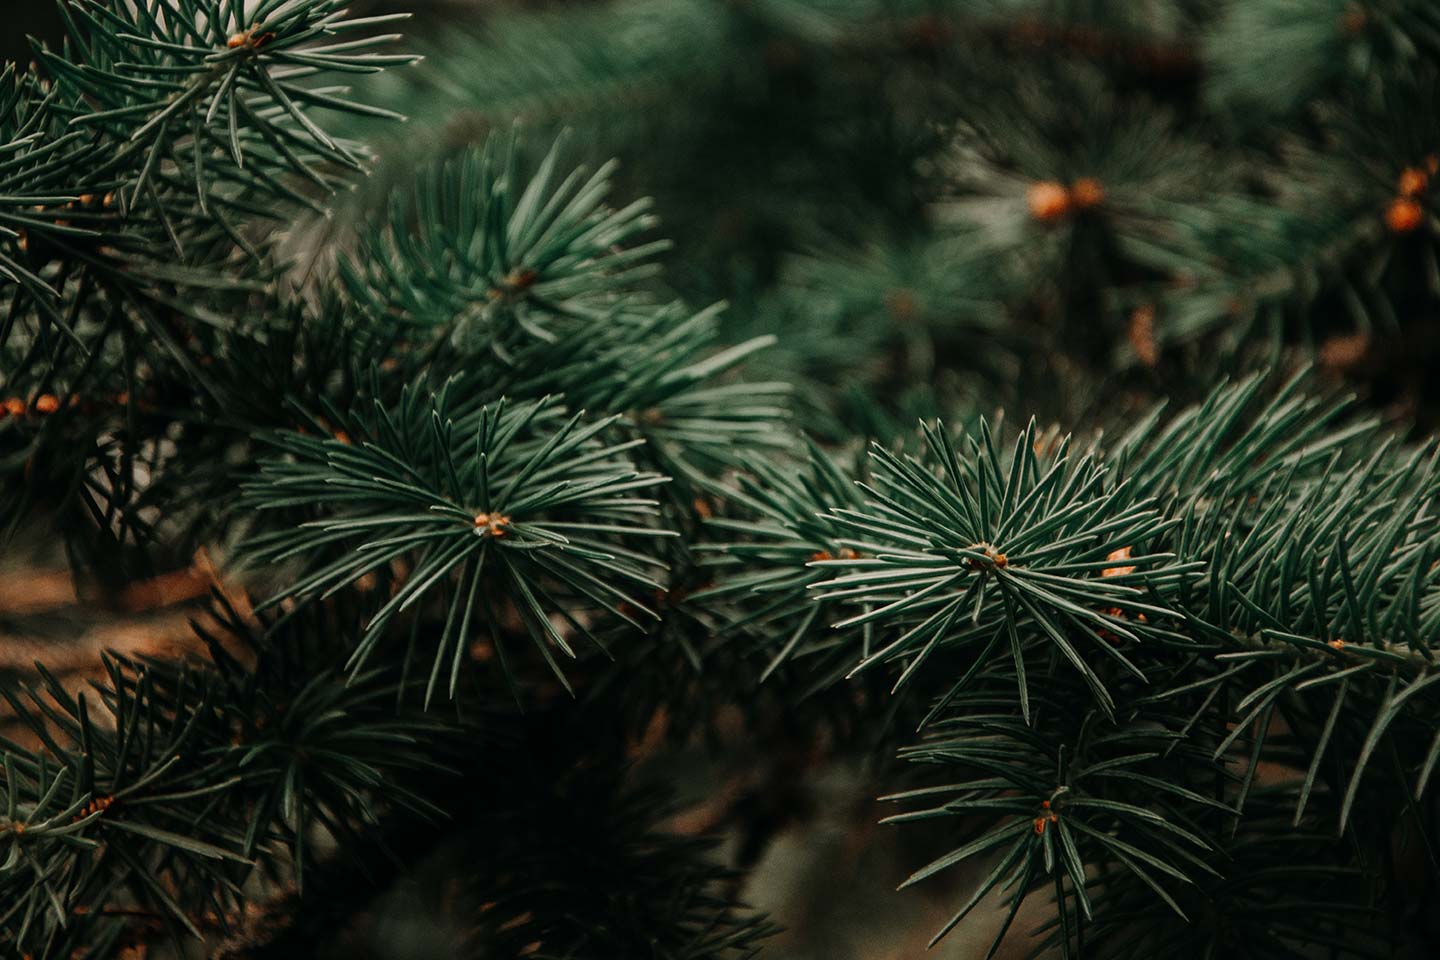 Christmas trees: Natural or artificial?